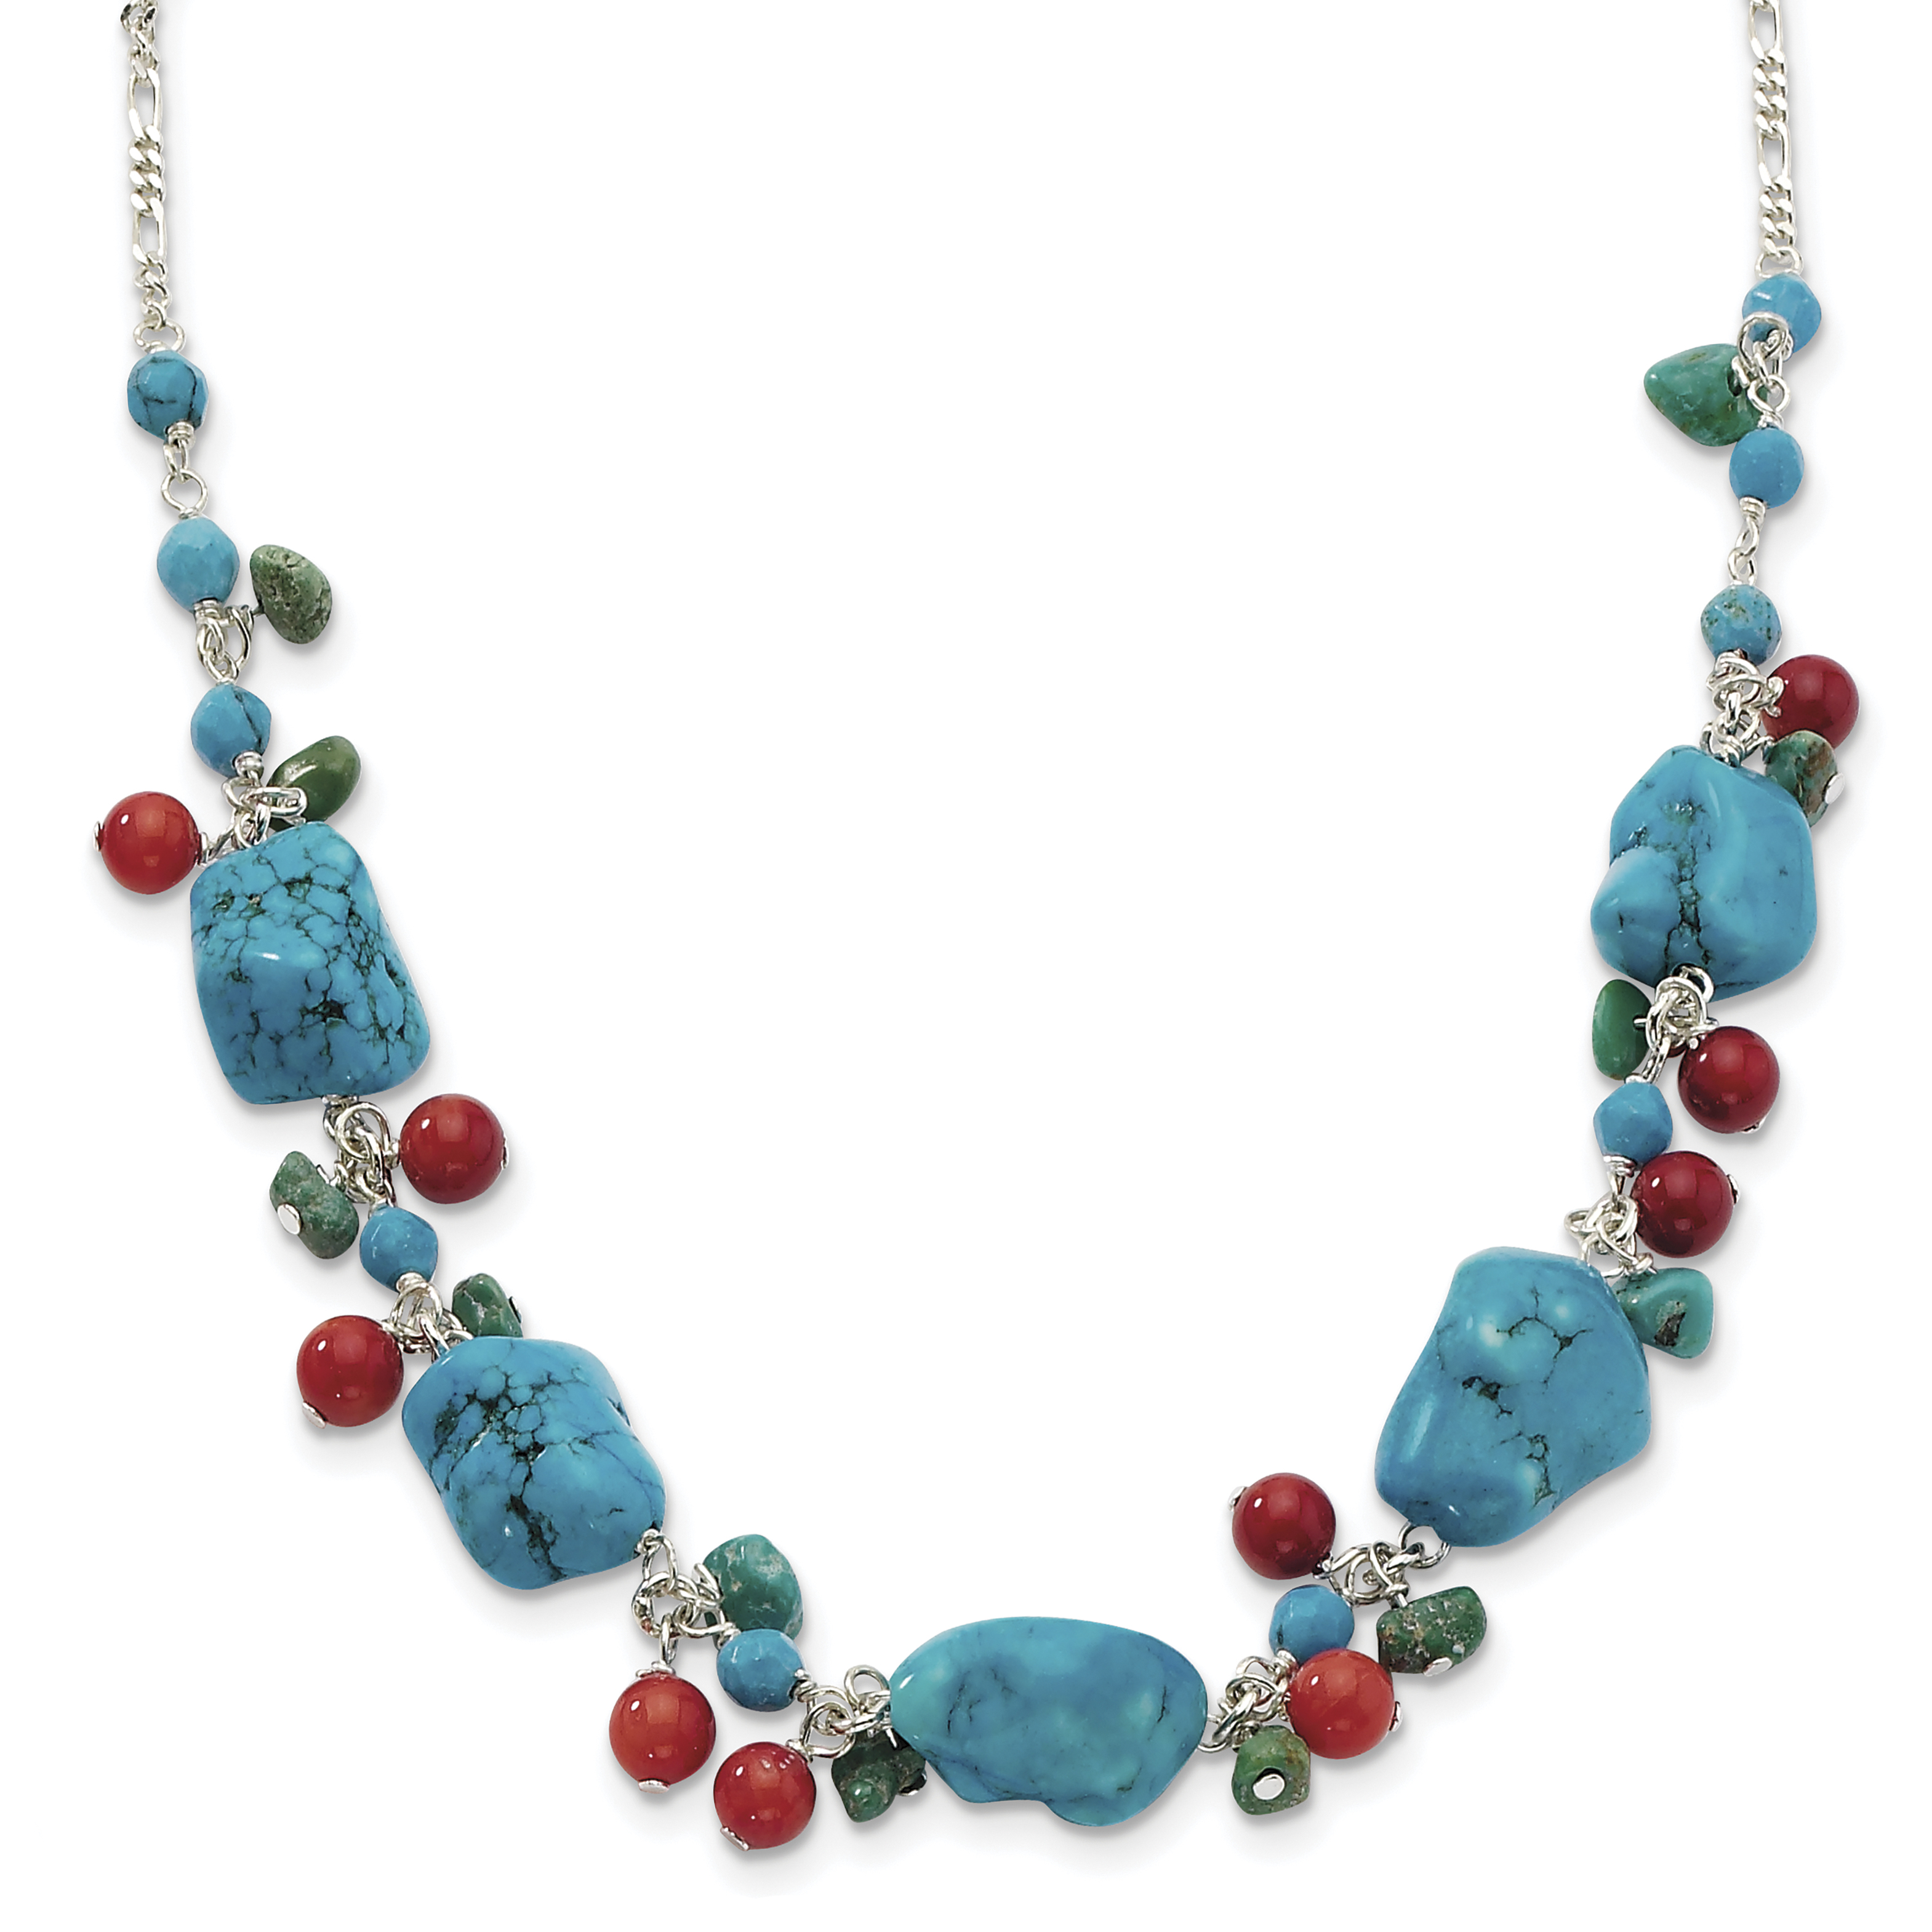 Roy Rose Jewelry Sterling Silver Dyed Howlite, Turquoise, Red Coral Necklace ~ Length 16'' inches by